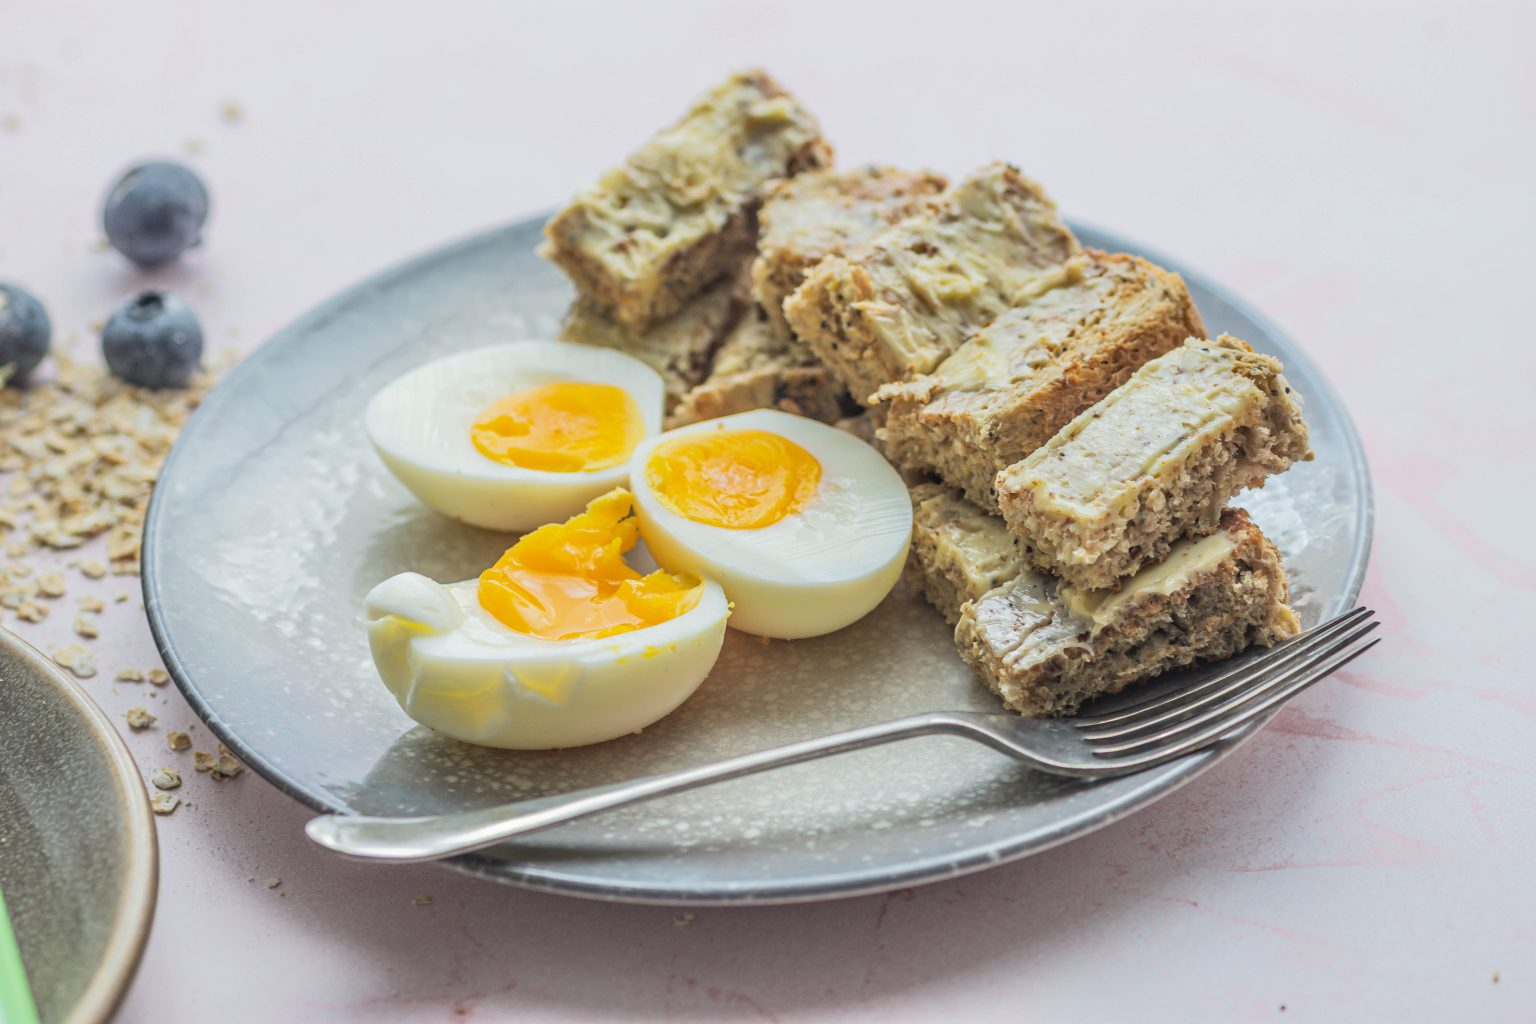 Three halves of a soft boiled egg with little wholemeal buttered toast soldiers and a small fork